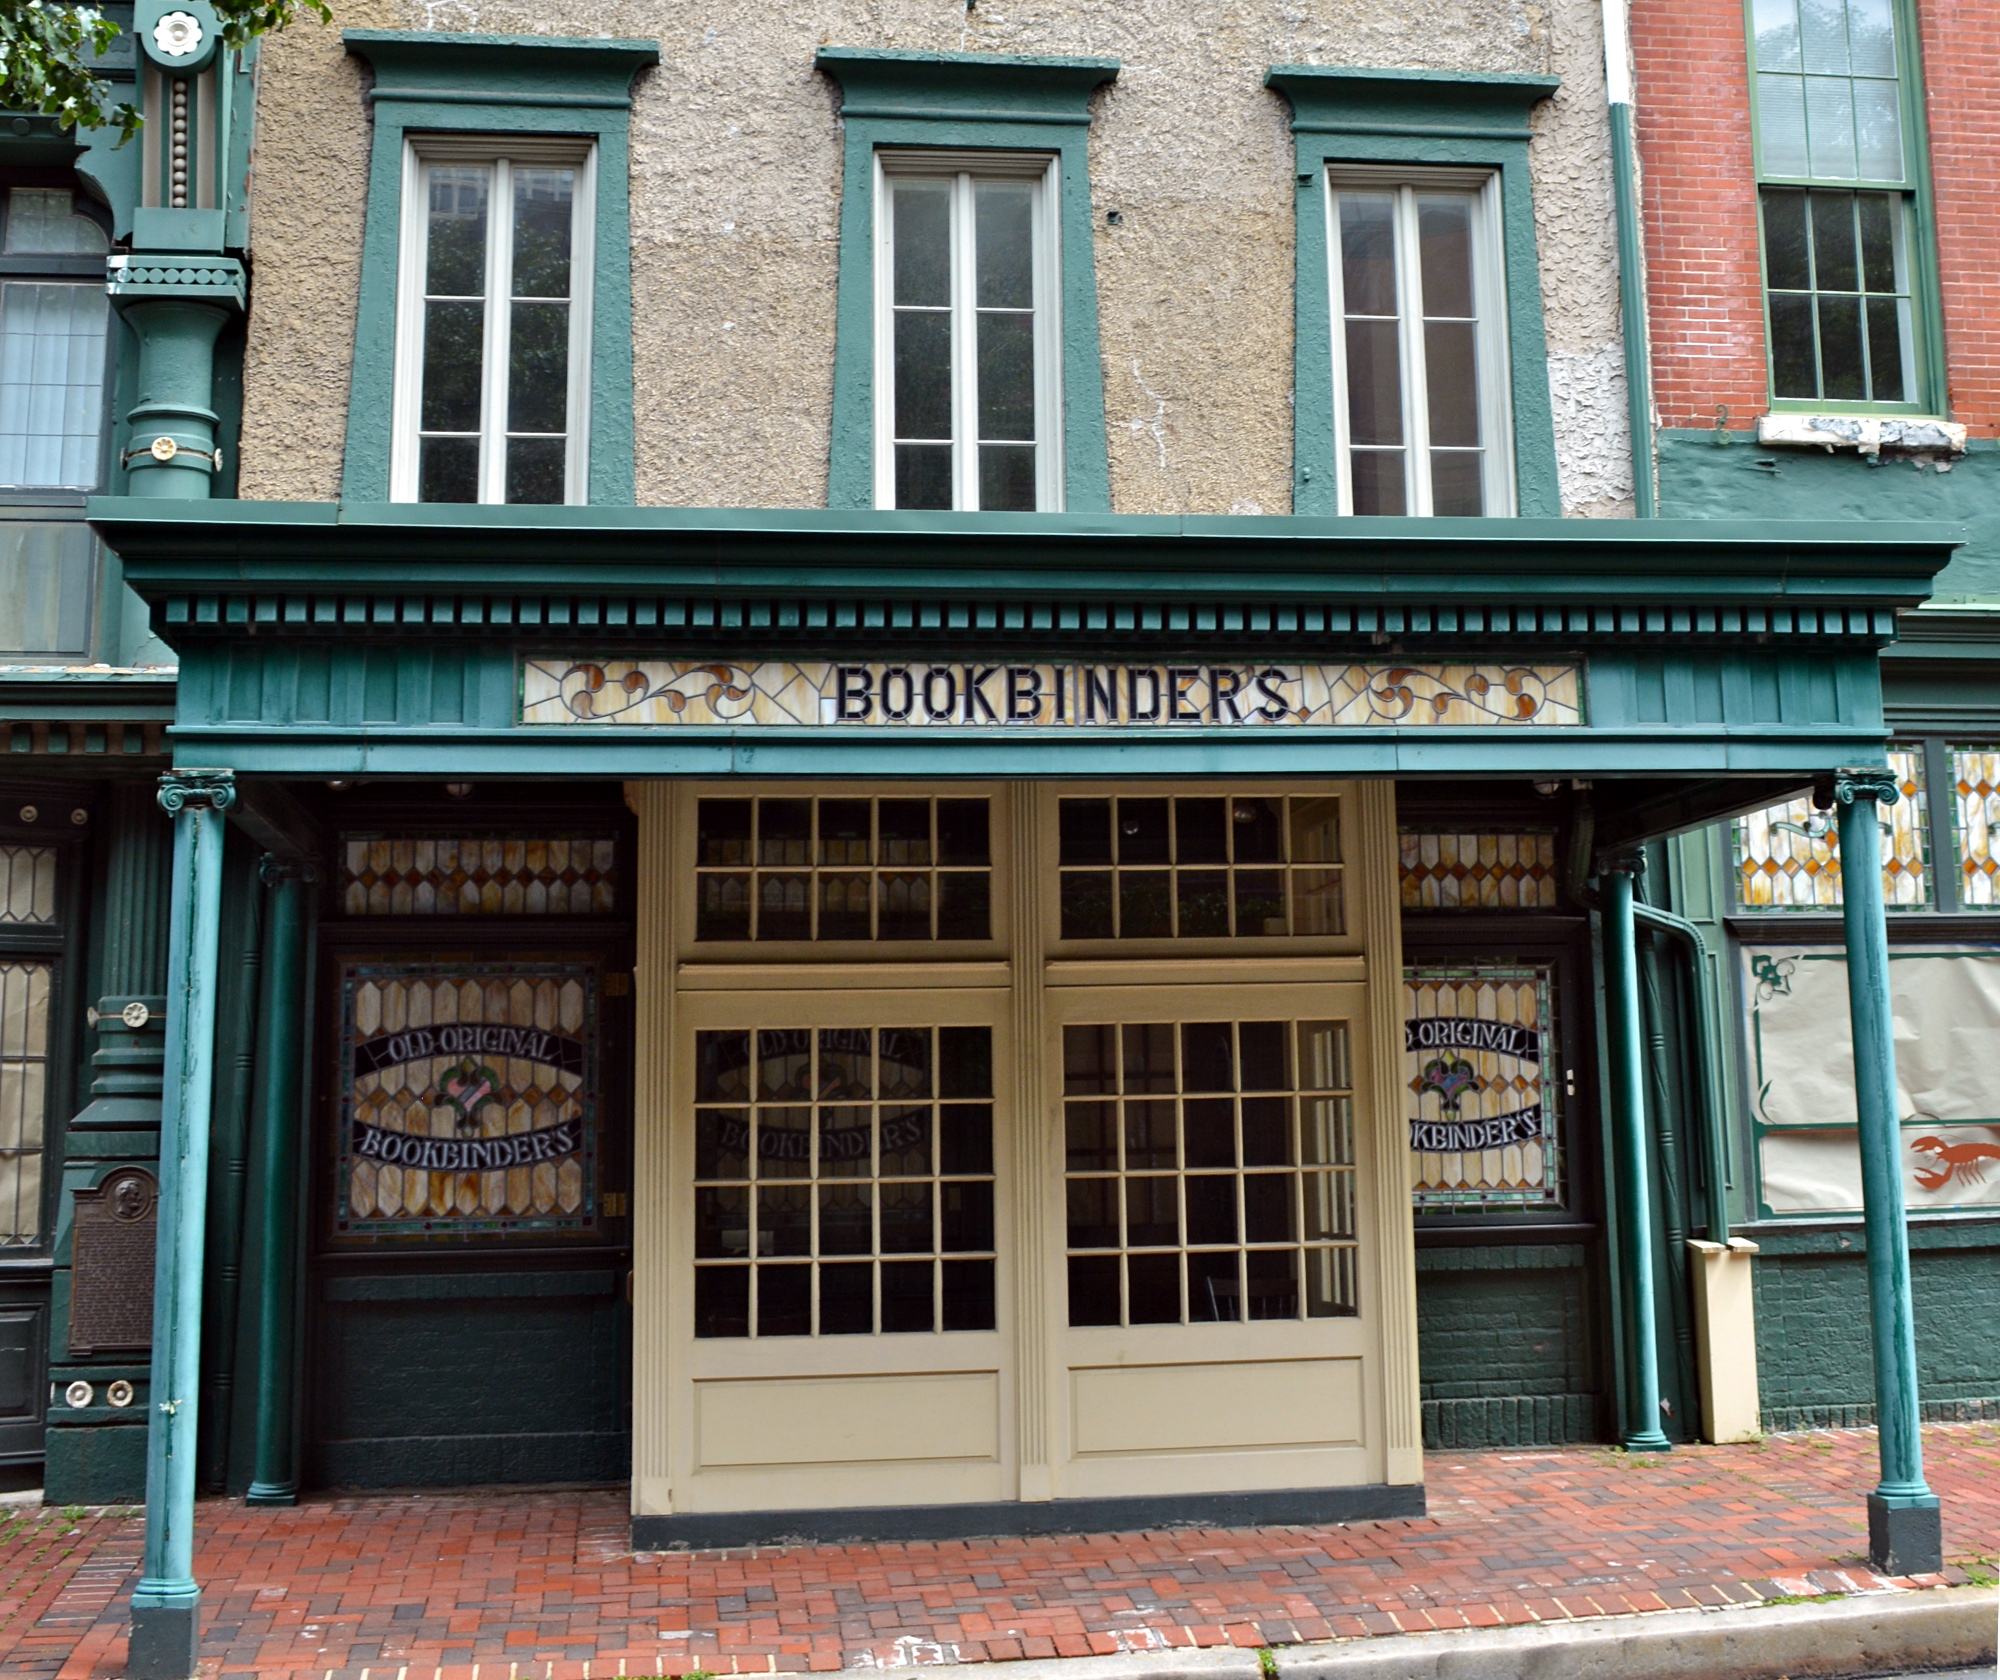 Bookbinder's, before the rehab was completed.